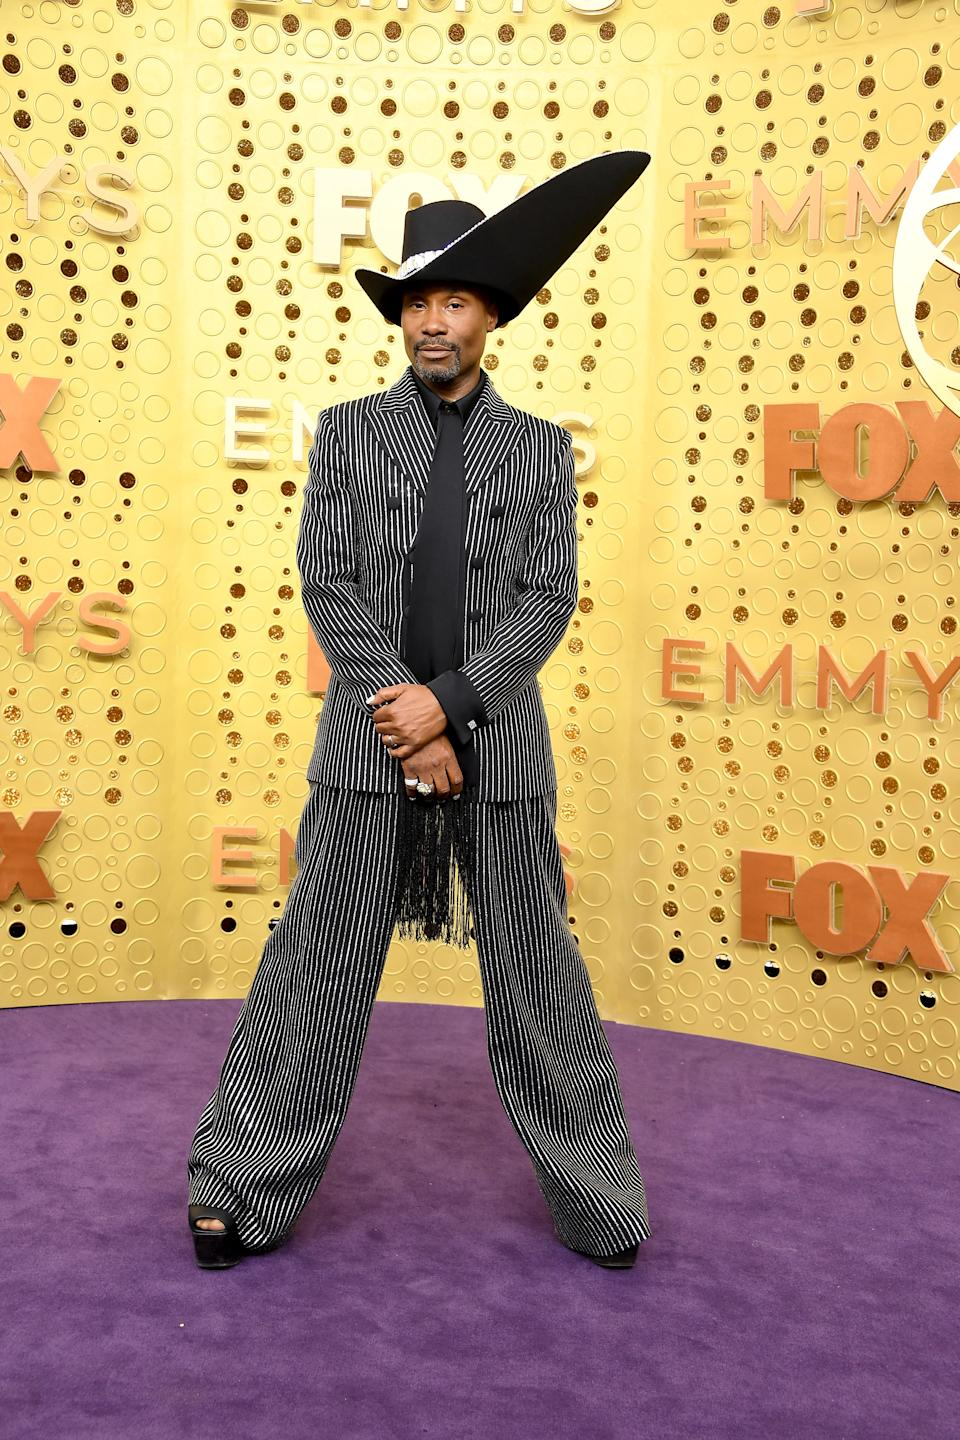 'Pose' star Billy Porter brought his signature style to the Emmys purple carpet in custom Michael Kors. [Photo: Getty]